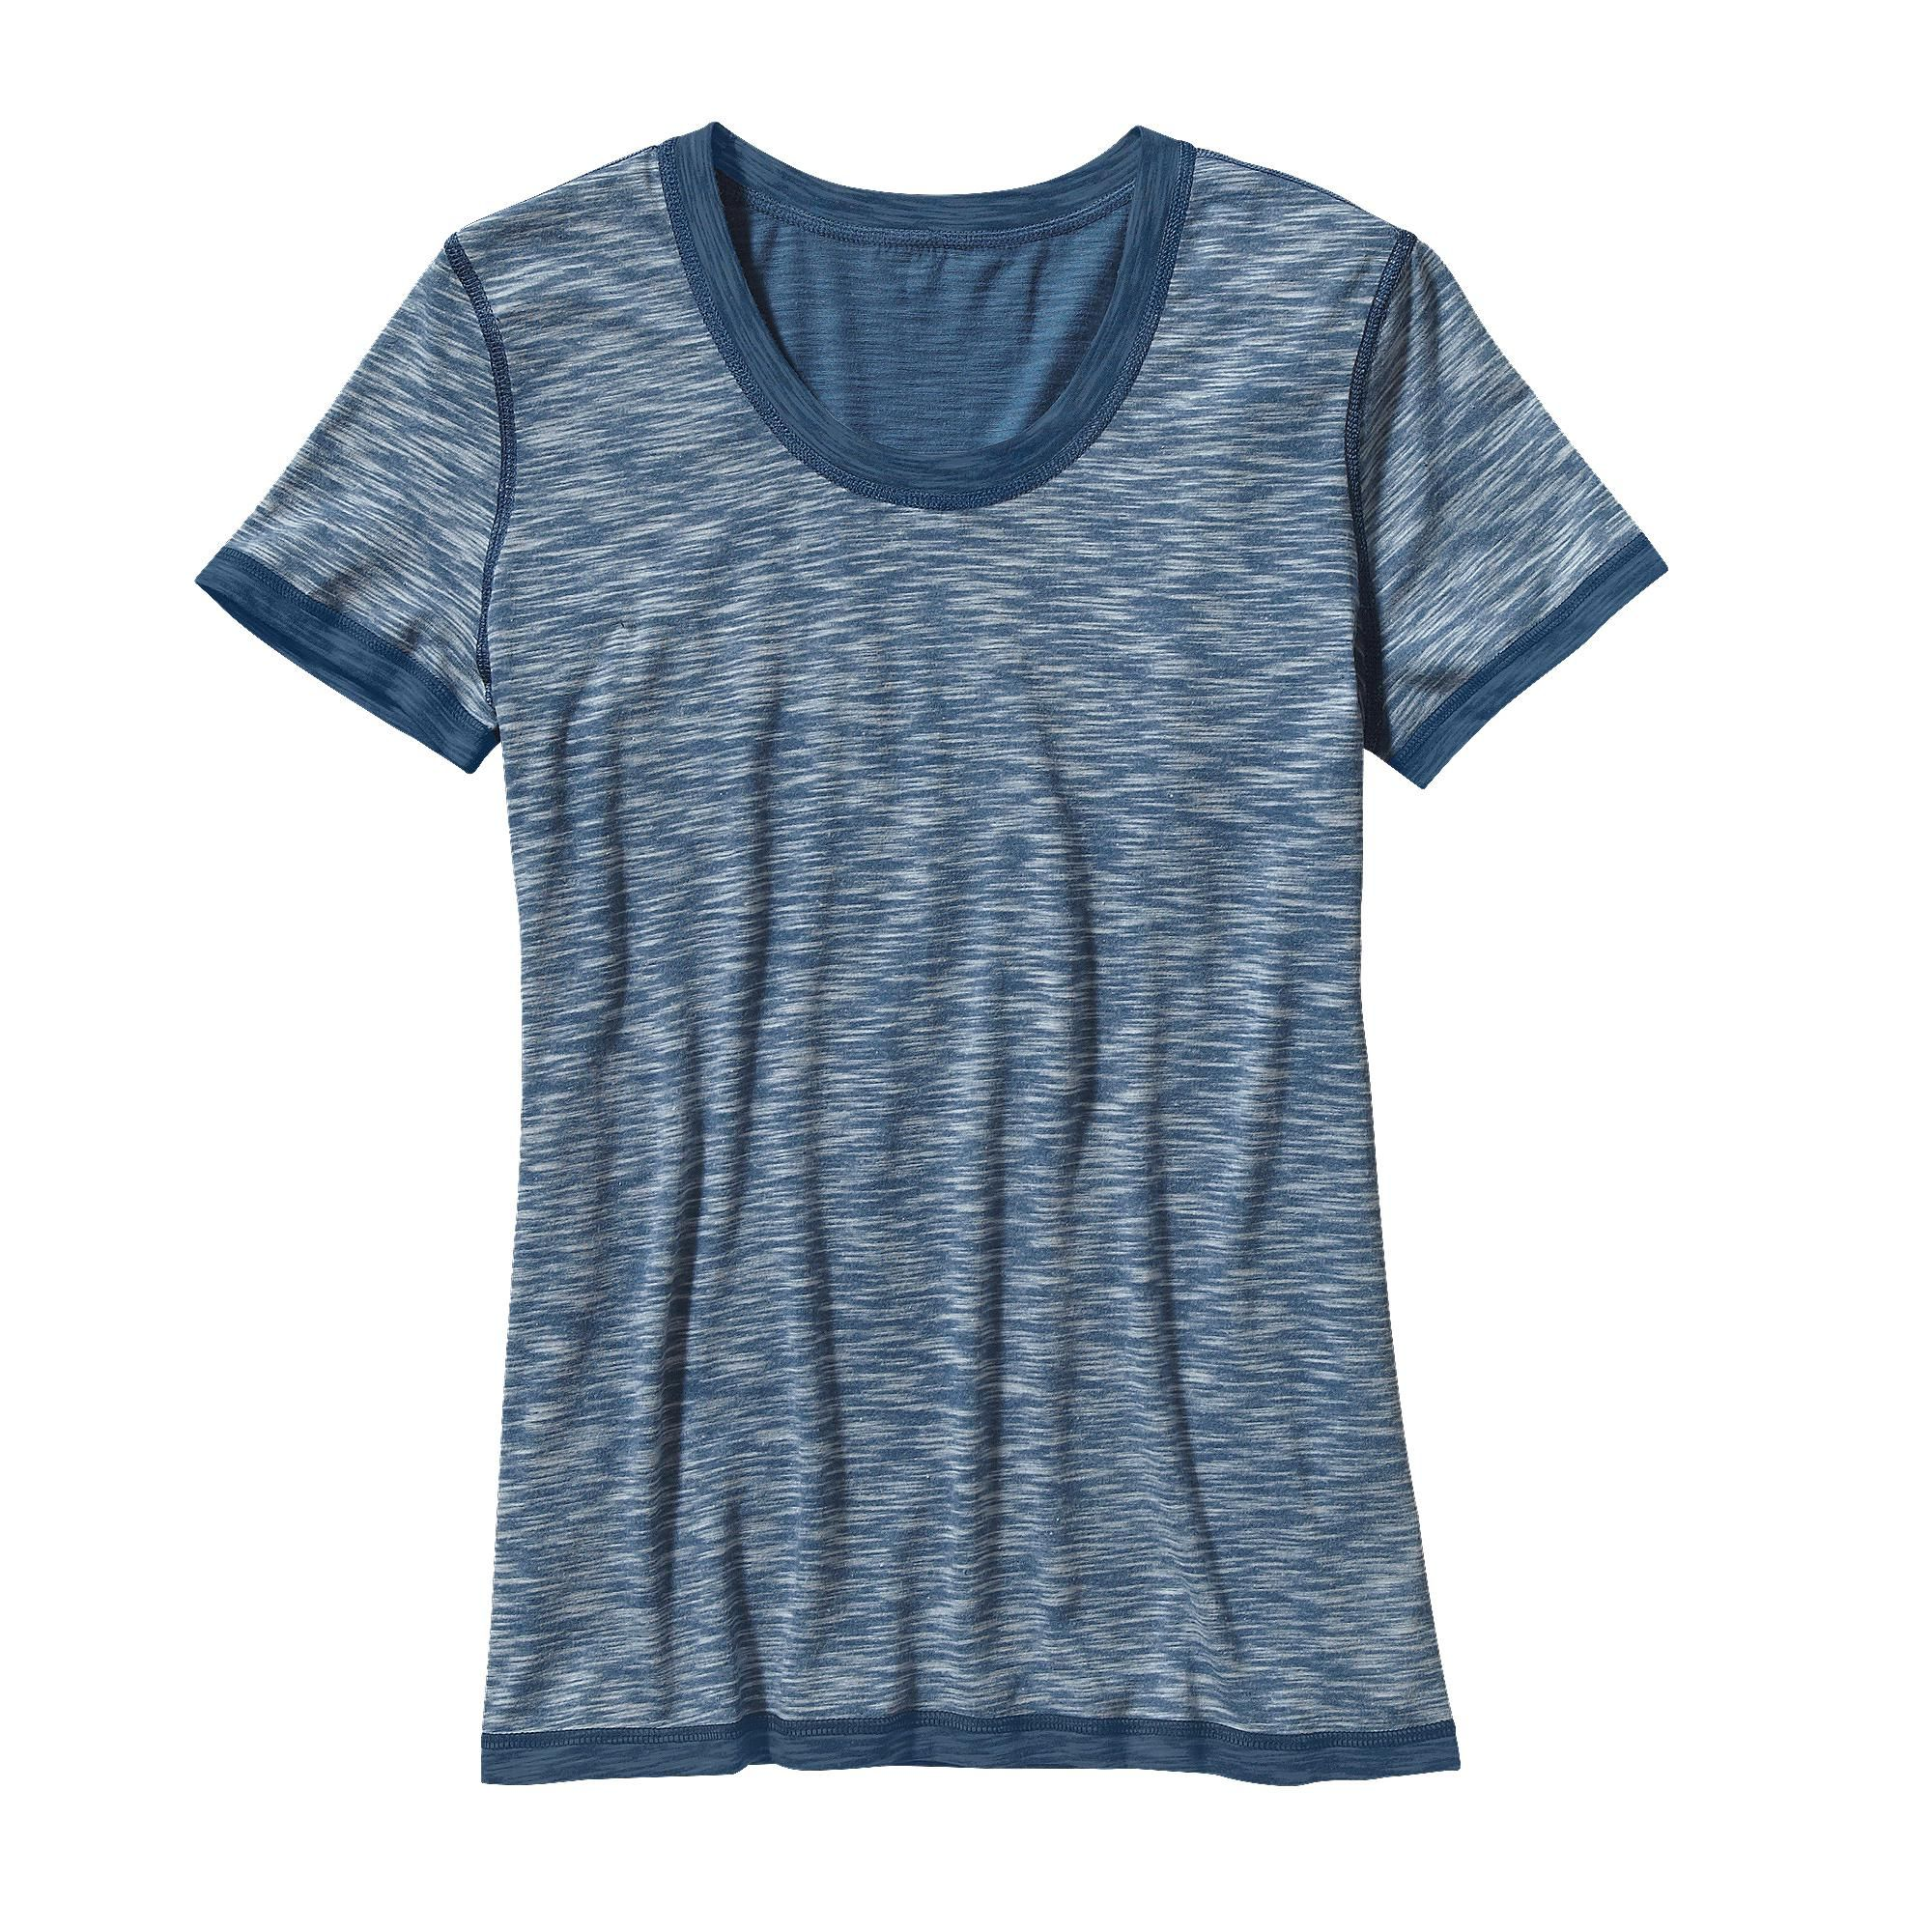 c492437e3b5b The Patagonia Women s Reversible Slub Knit Tee is made of our  lightest-weight knit. Slip on this cool-wearing tee and freshen your look.